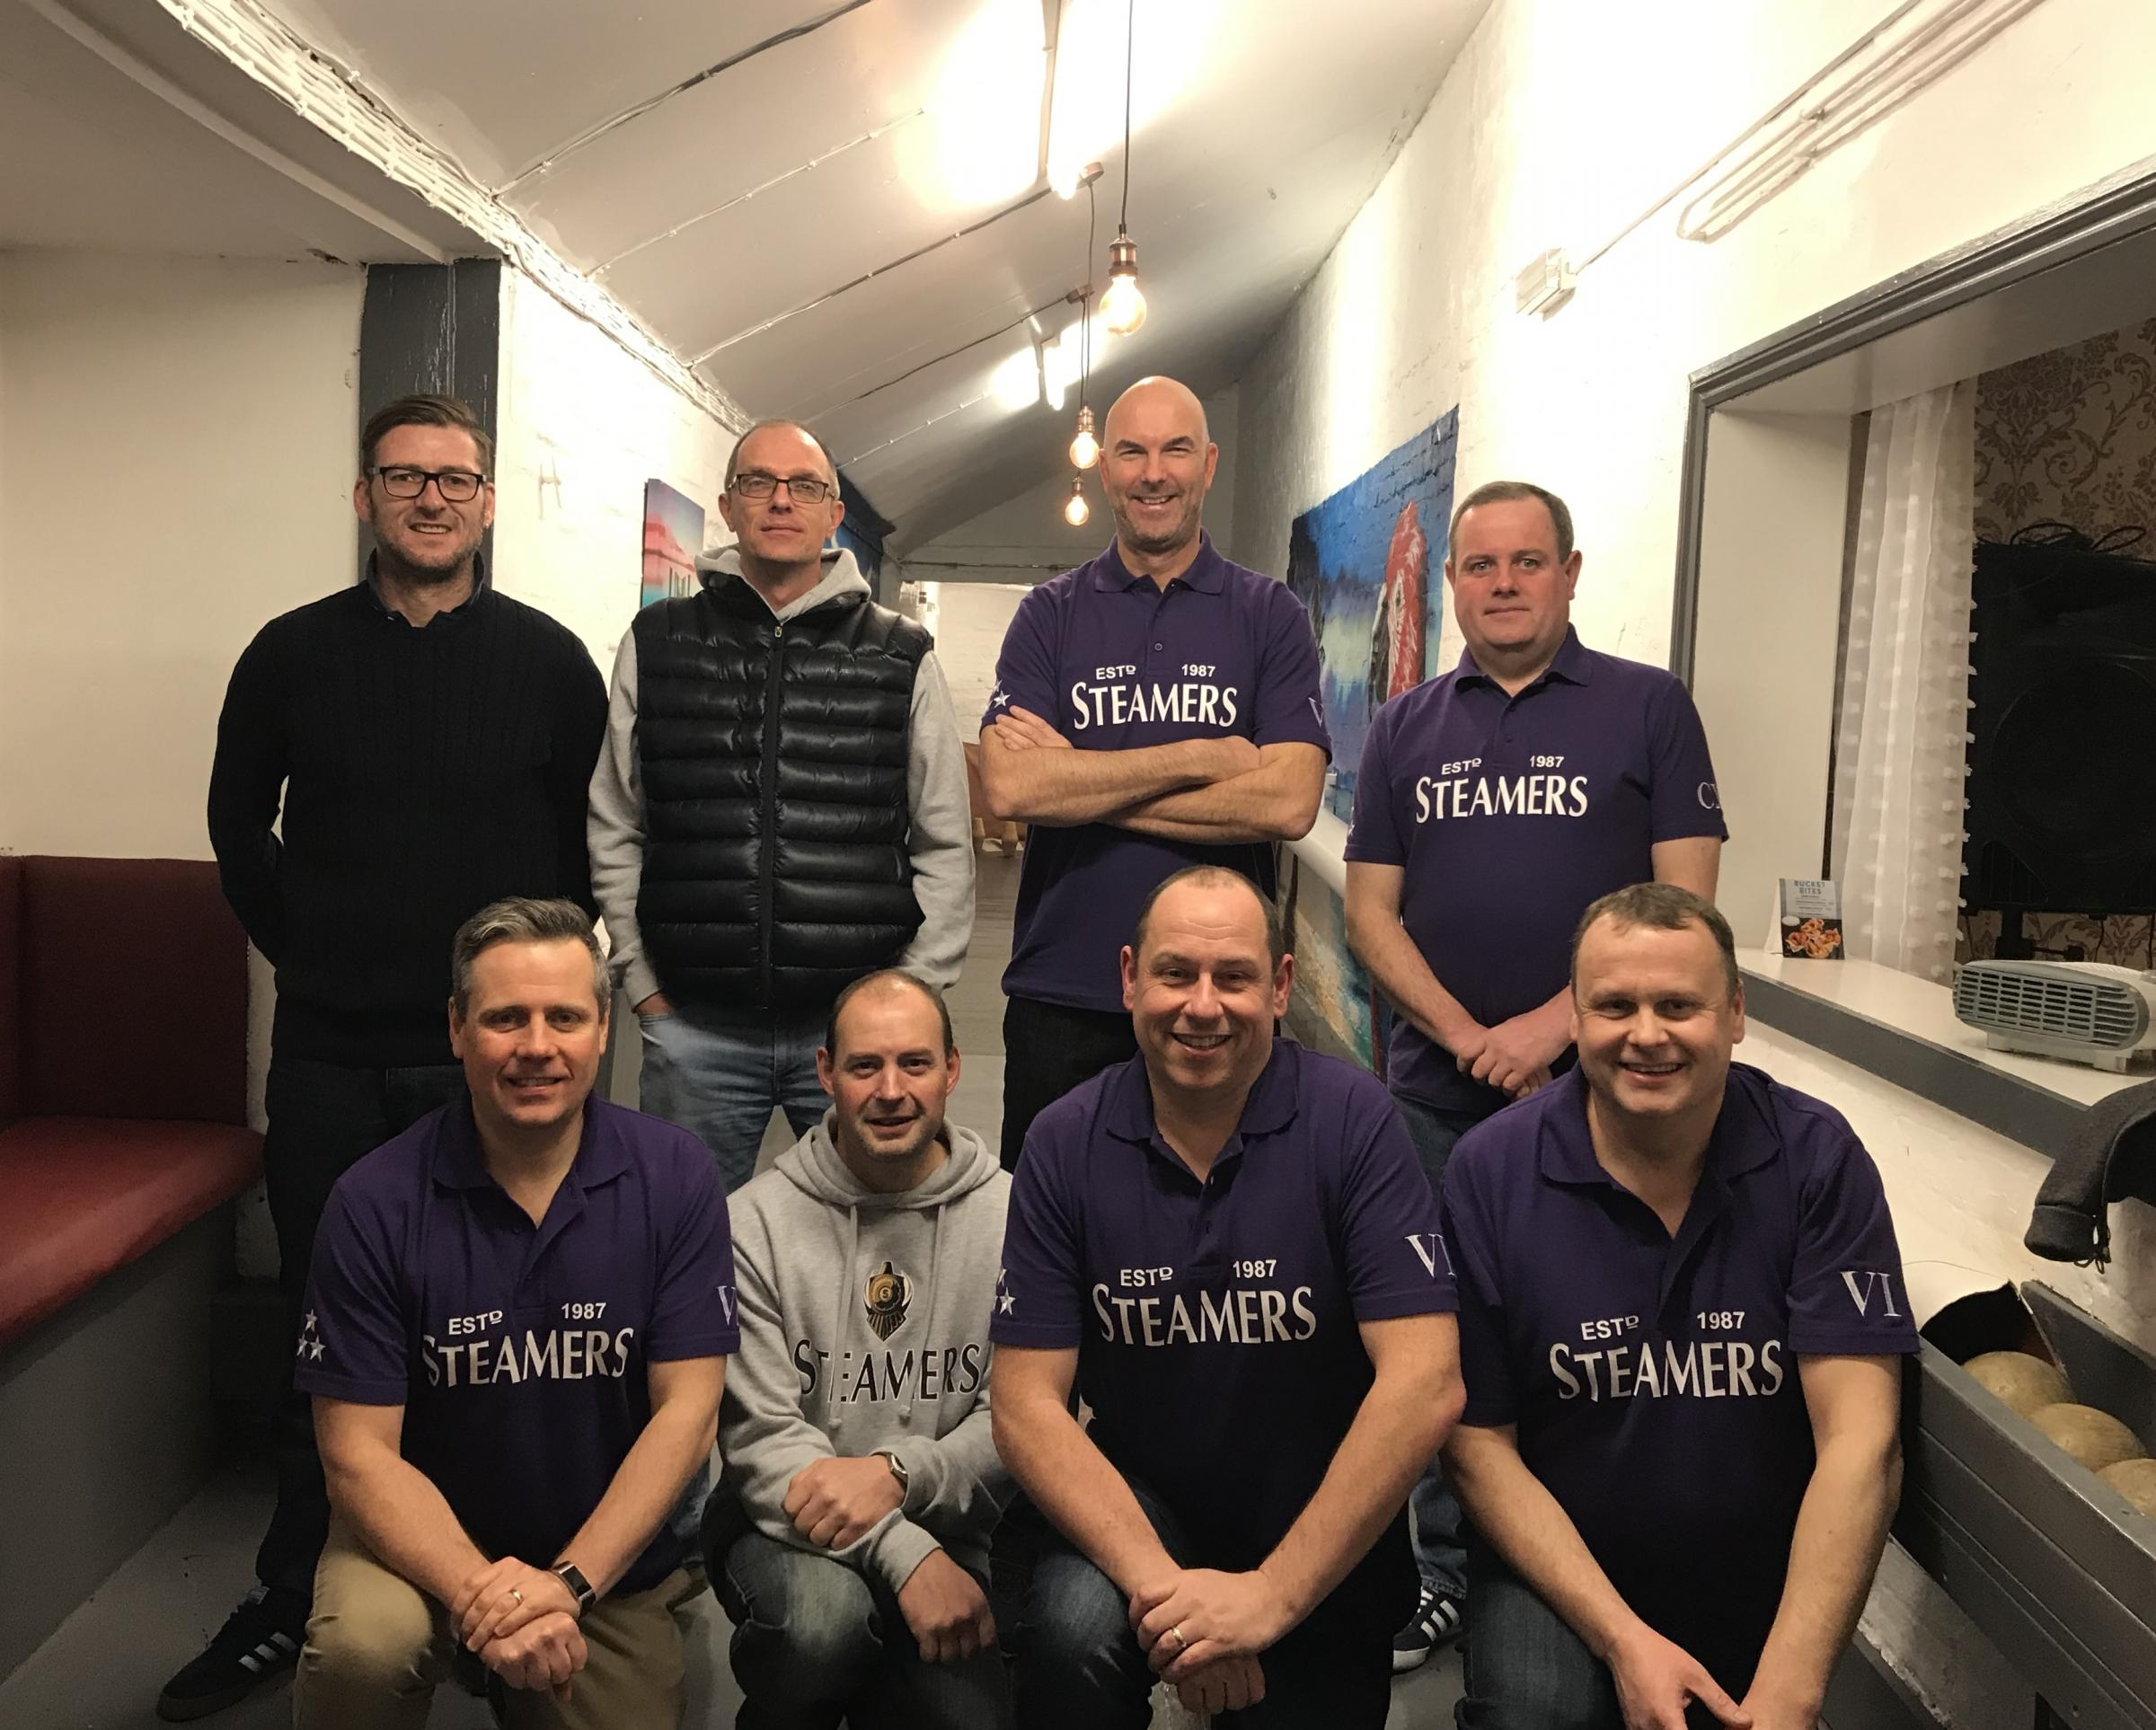 VICTORY: Steamers skittlers (from left): back - Stuart Pople, Ian Skinner, Tony Burrow, Richard Orledge; front - Chris Orledge, Graham Blake, Paul Cozens (capt), Mark Cozens. Not in picture: Craig Popham, Martin Withers, Lee Waldock, Kevin Watts.